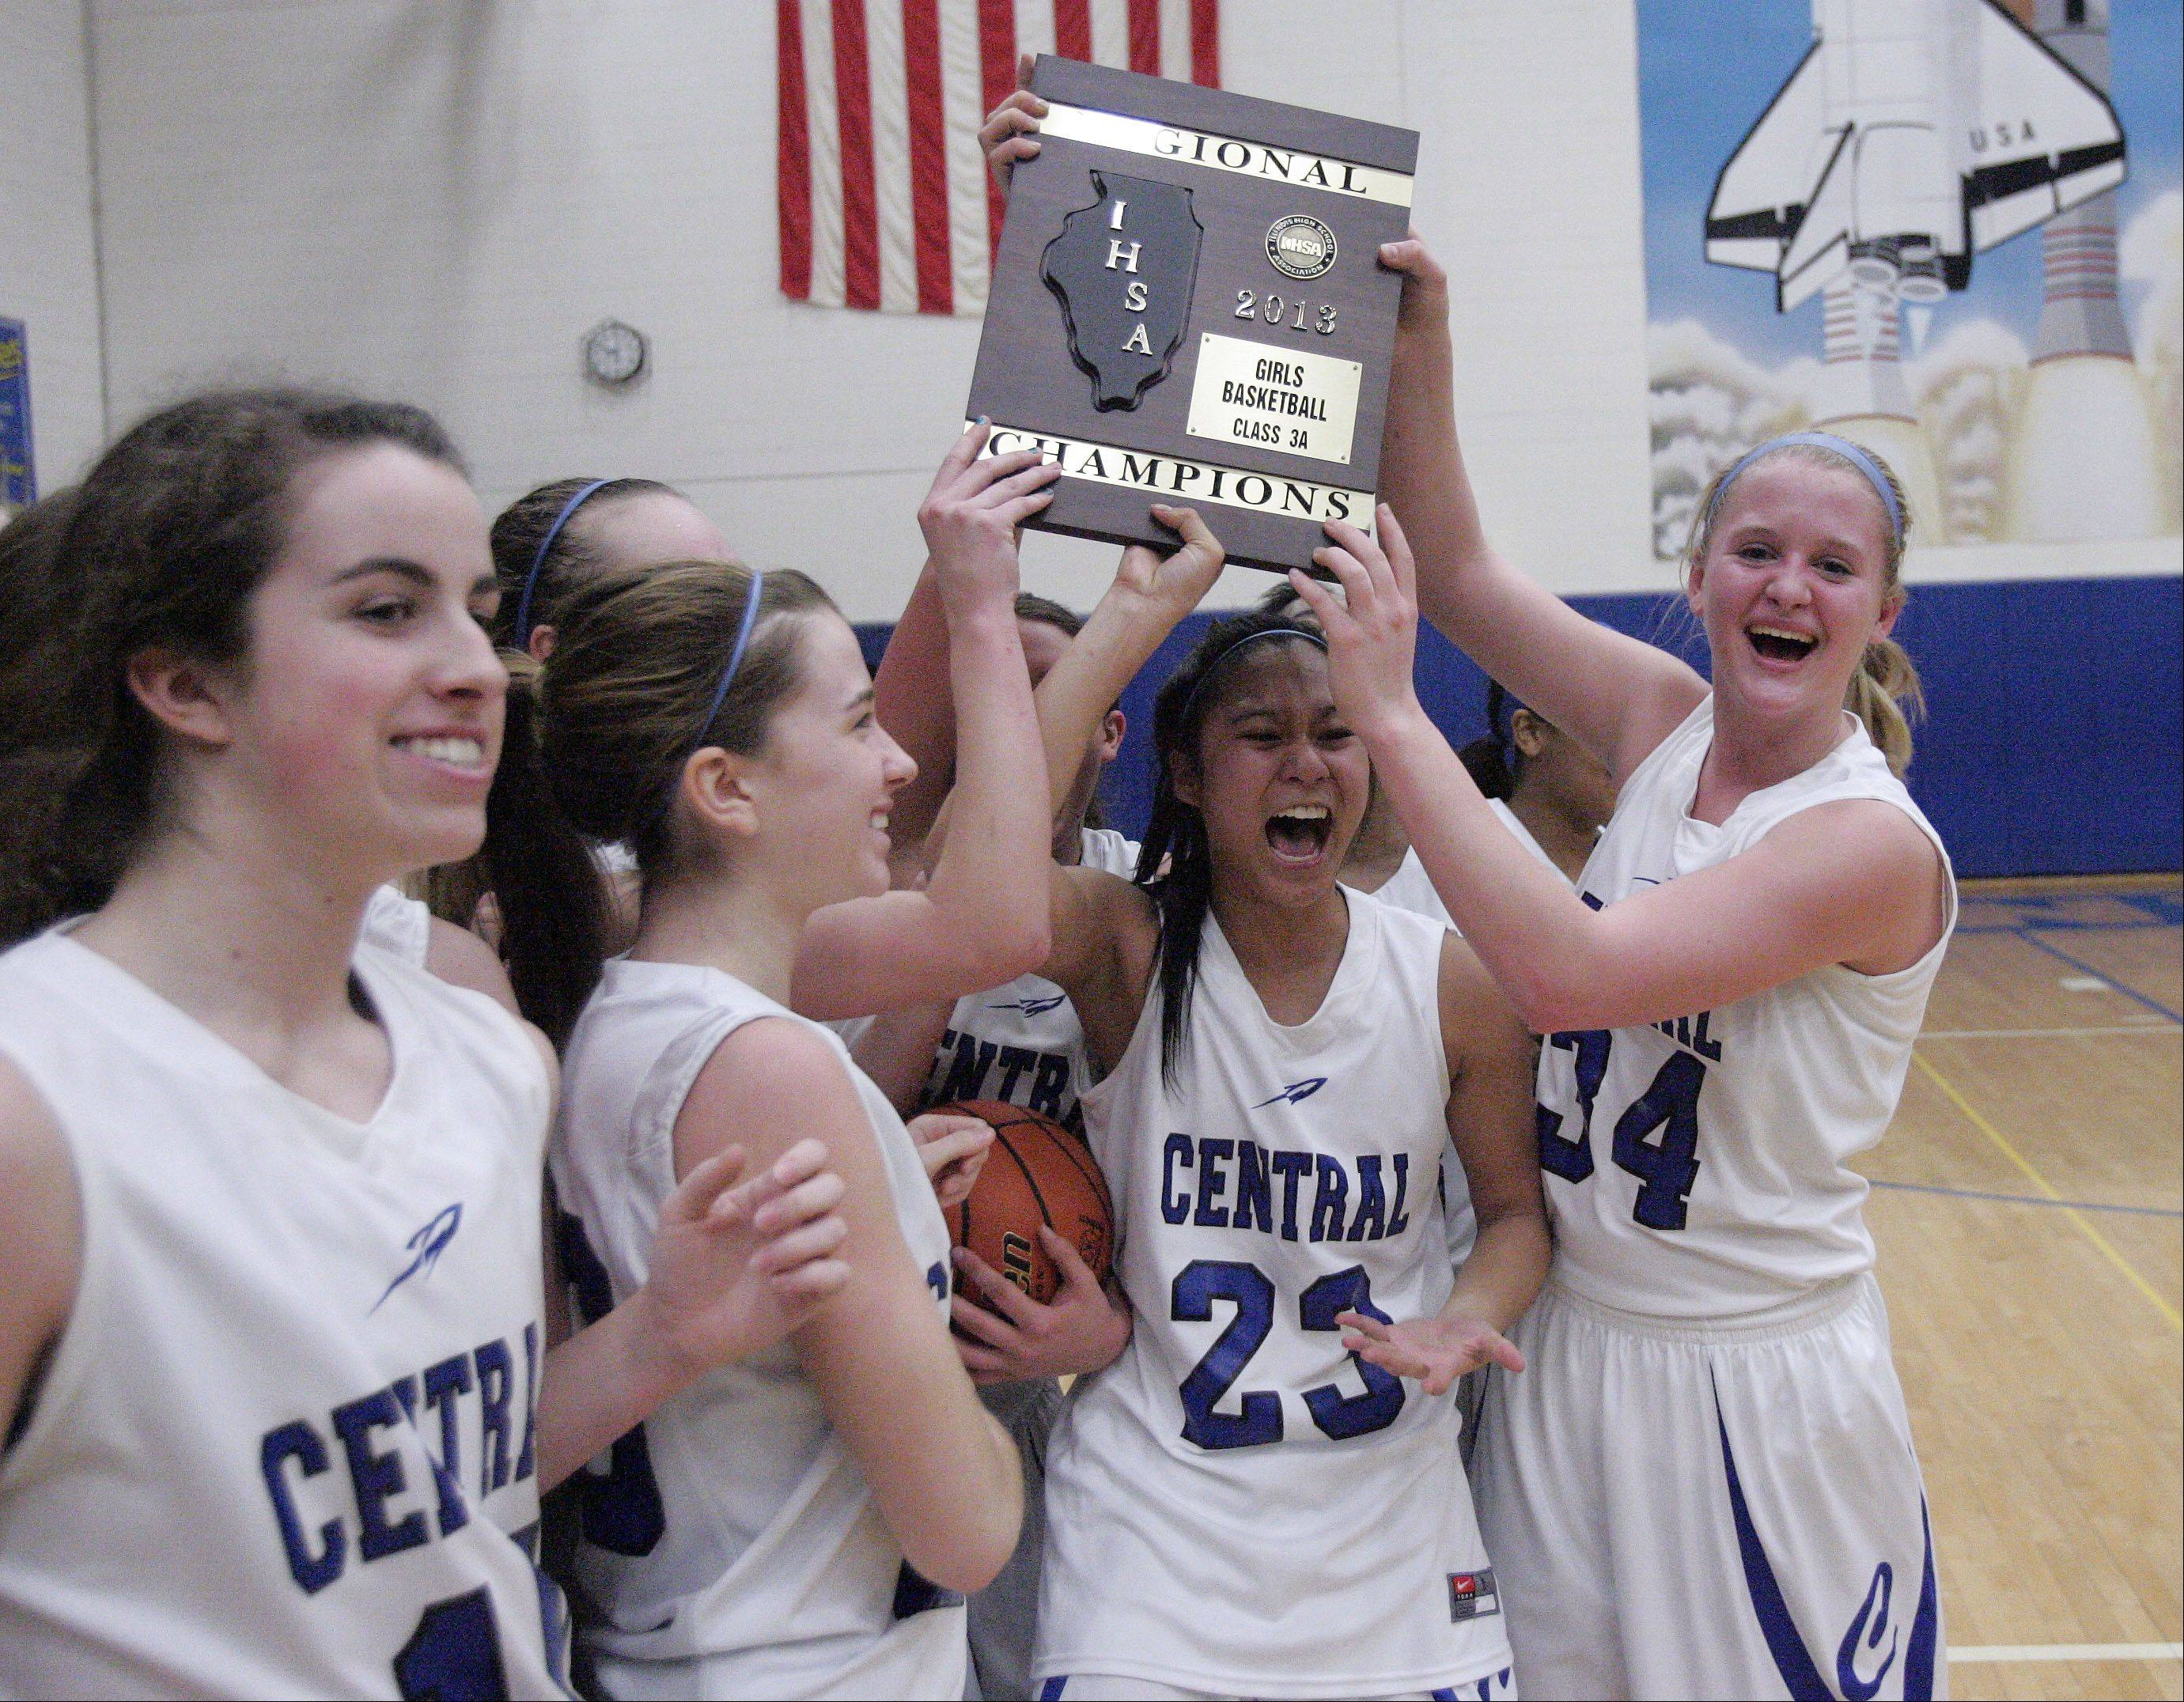 The Burlington Central girls basketball team celebrates its 38-34 win over Plano Friday in the Class 3A regional final at BC, the Rockets' first regional title since 1990.